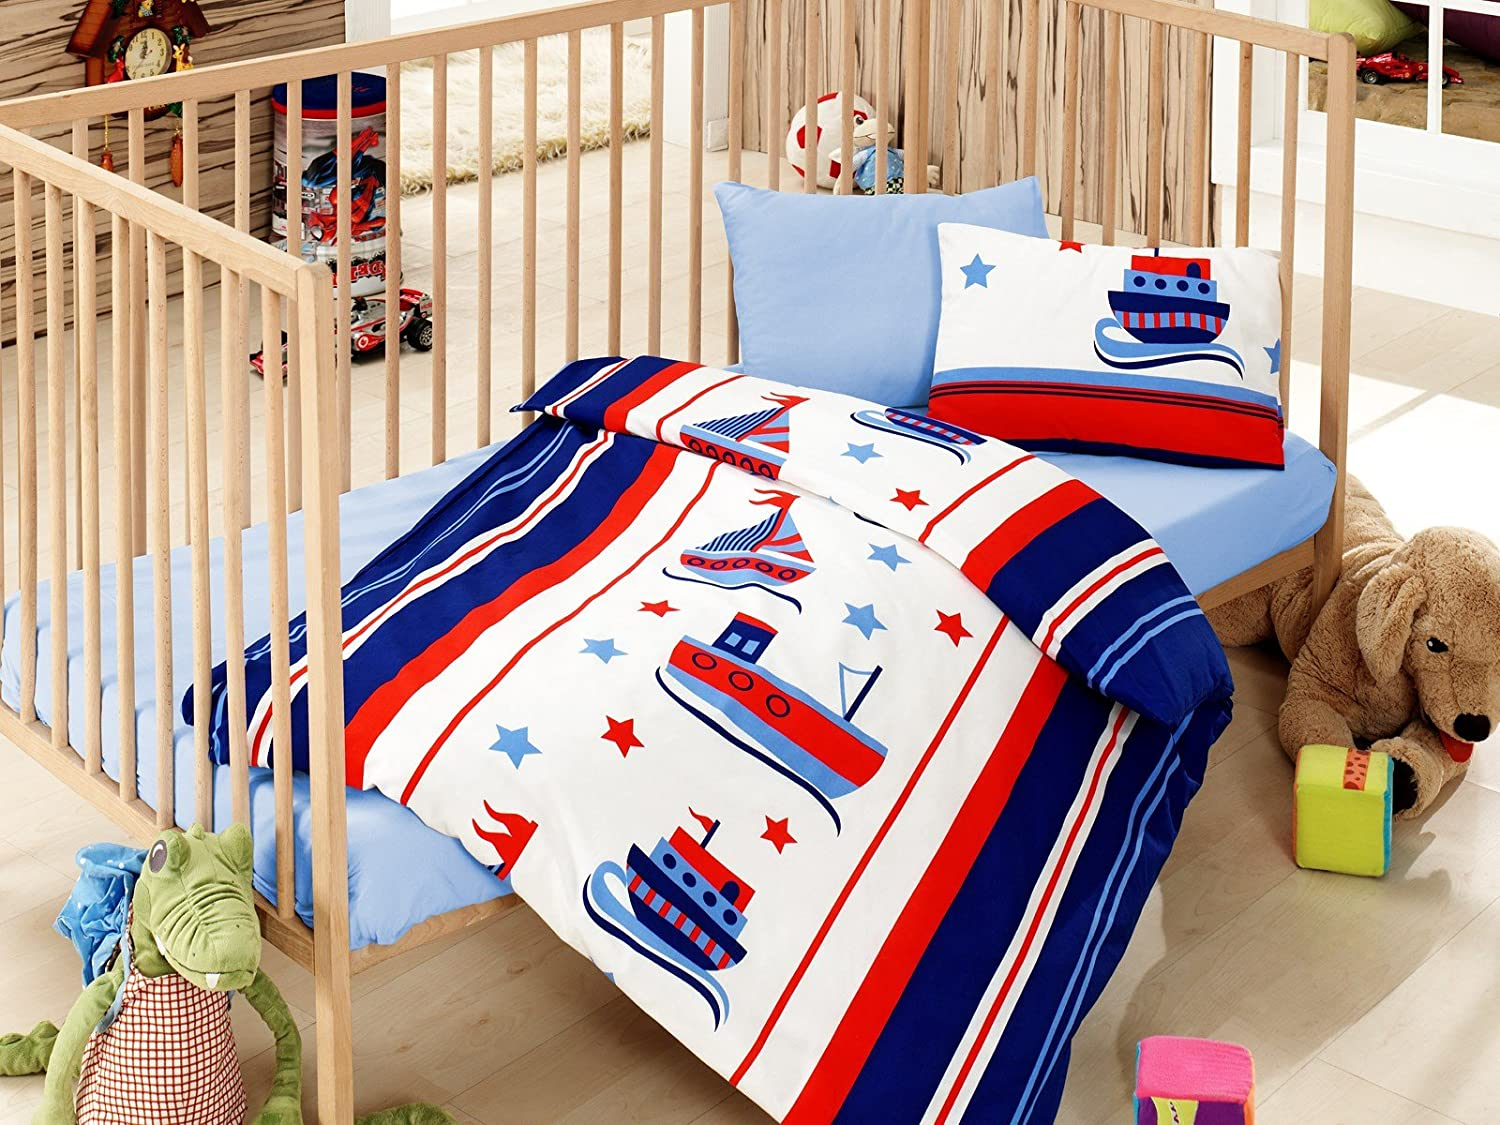 Nautical Baby Bedding, Toddlers Crib Bedding for Baby Boys, 100% Cotton Duvet Cover Set, Baby Comforter Included, 5 Pieces